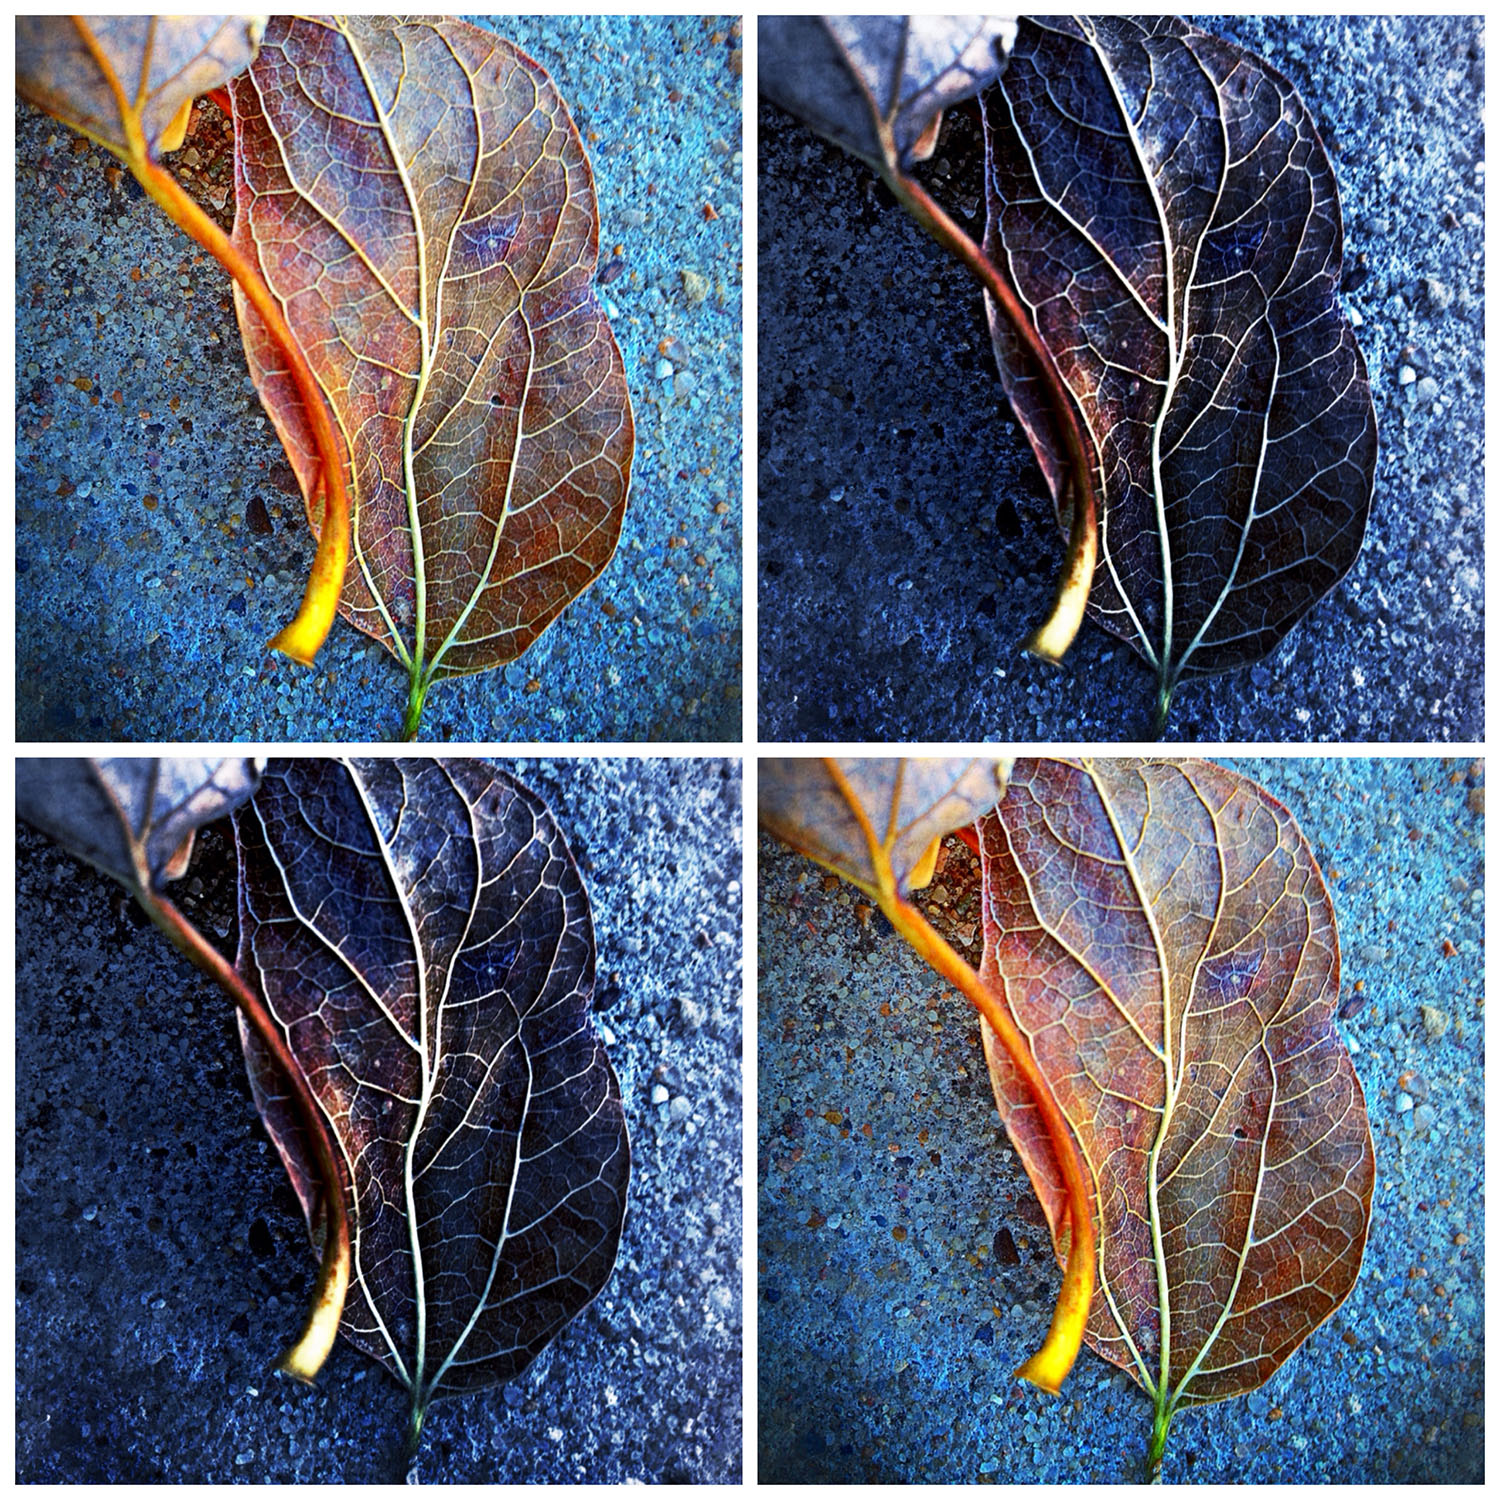 Image from evening walk in late November.